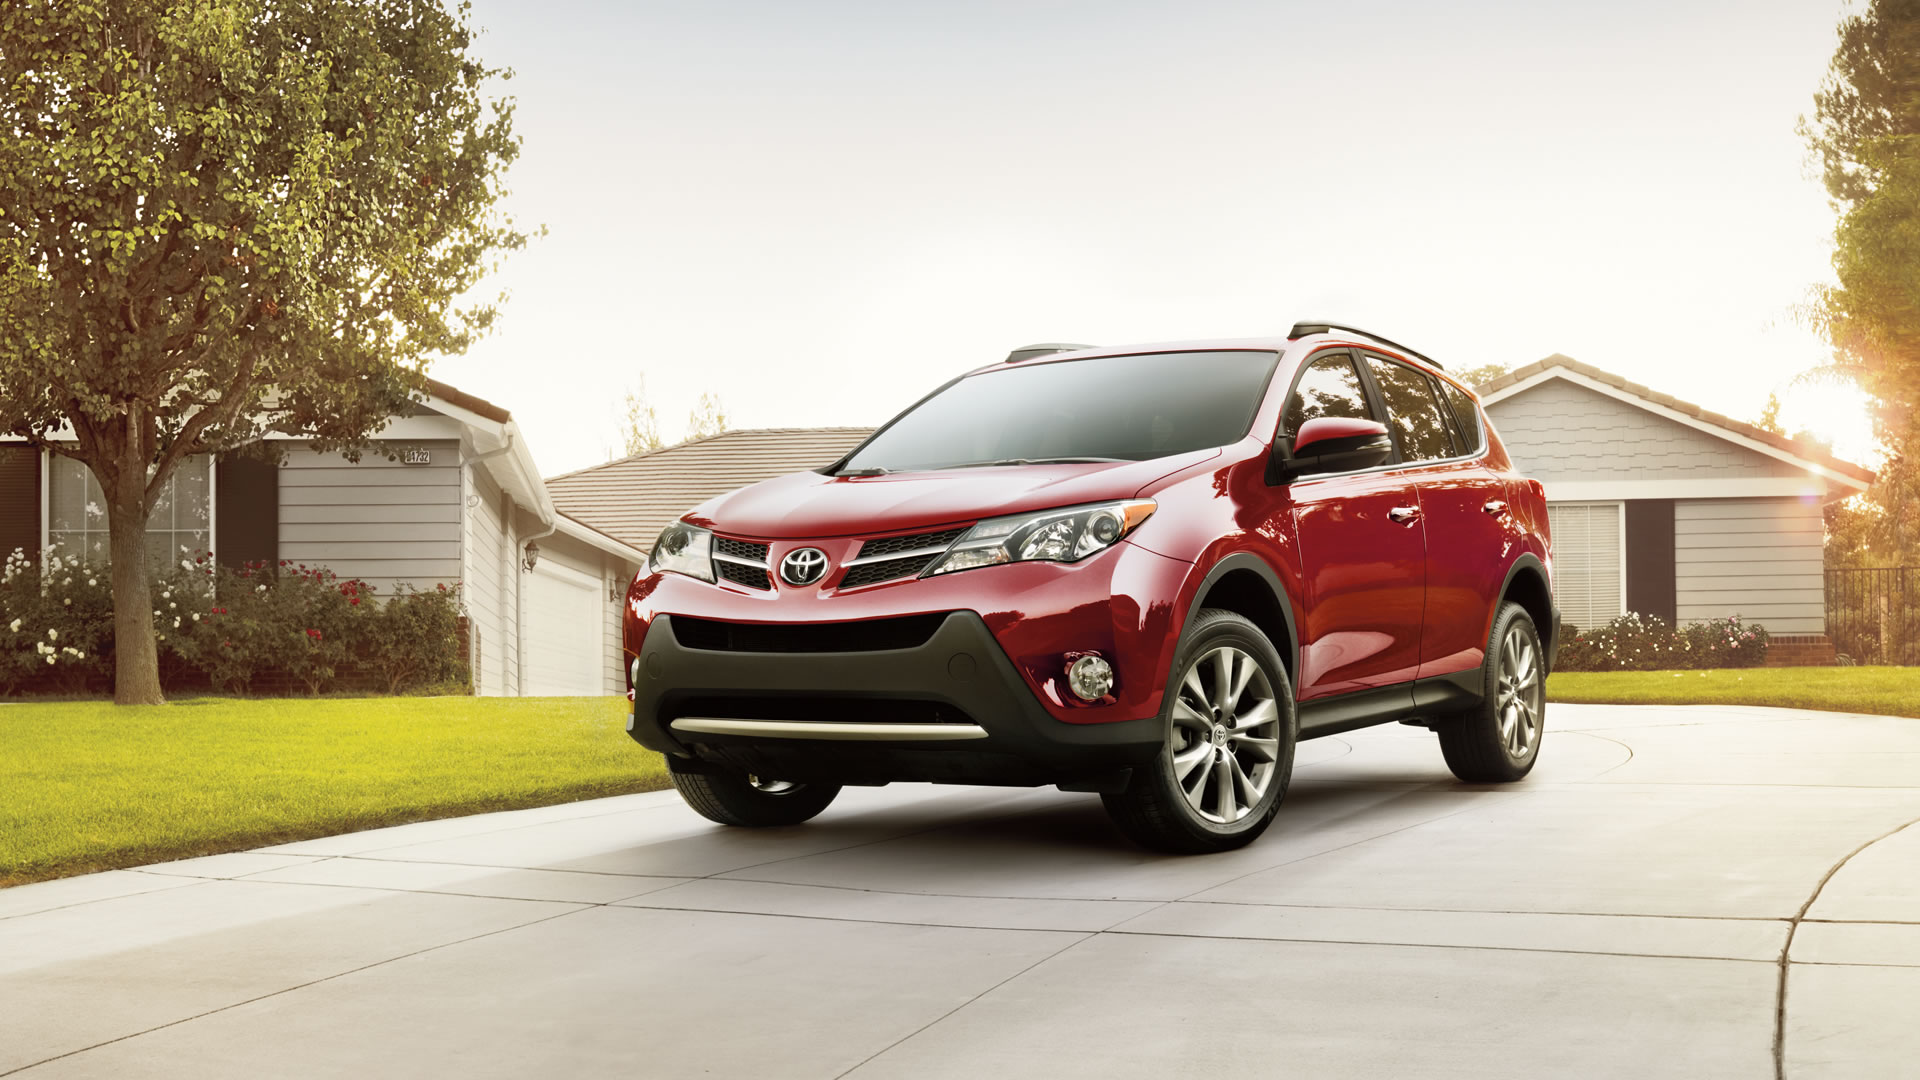 Used Cars for Sale In Pennsylvania Fresh Quality Used Cars for Sale In York Pa